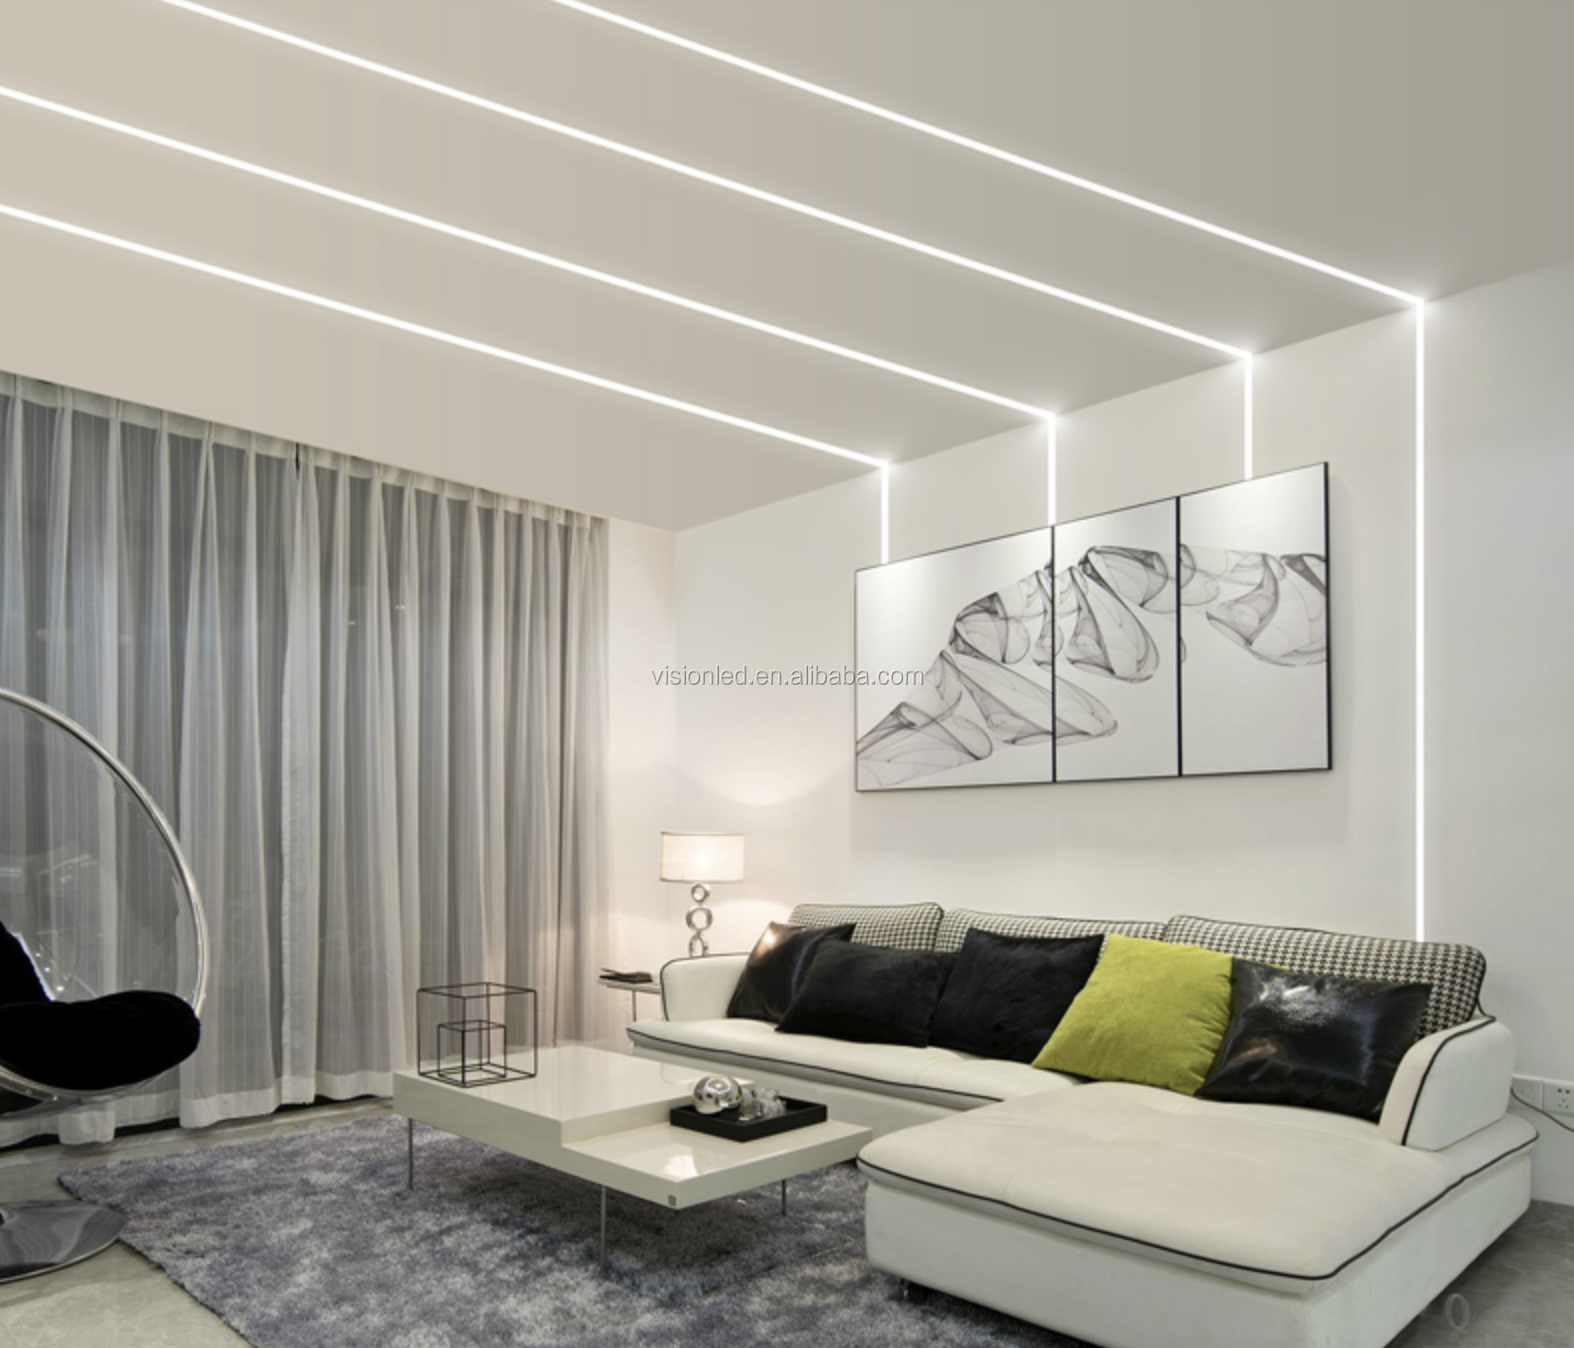 Trimless Recessed Drywall use architectural gypsum plaster aluminum profile for LED Strips, 8pcs a lot (1meter/pcs)